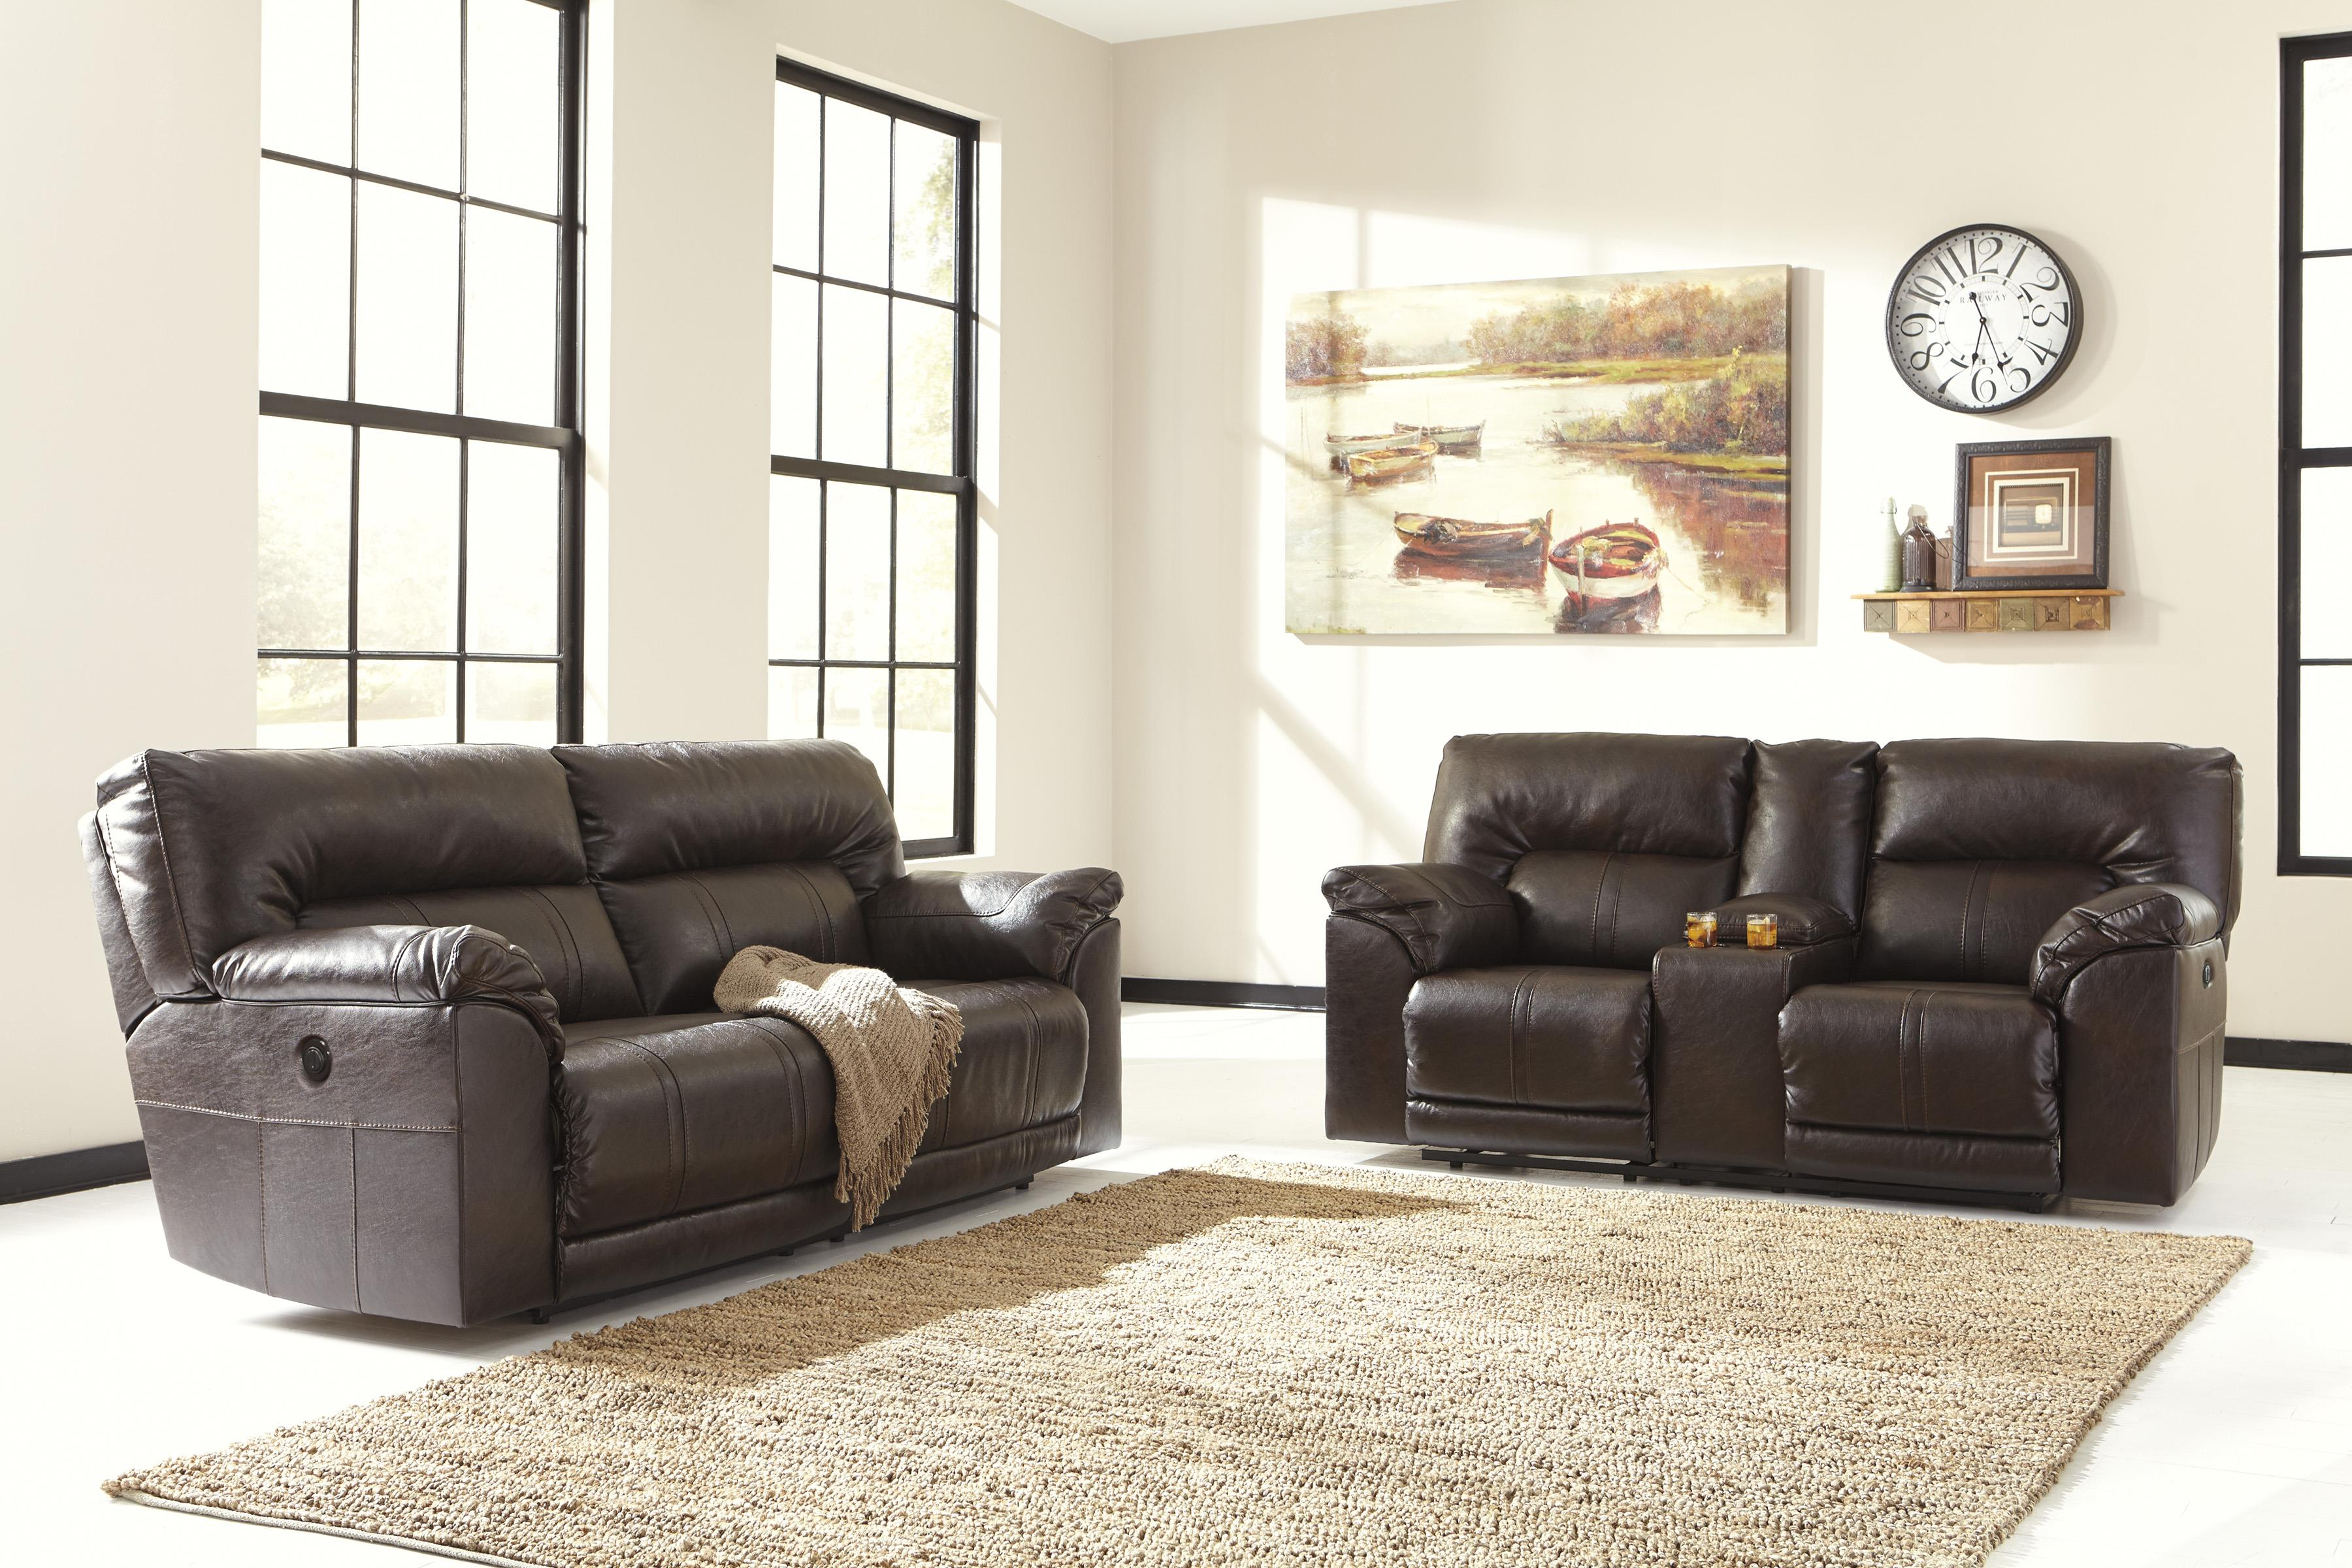 Benchcraft Barrettsville DuraBlend® Reclining Living Room Group - Item Number: 47301 Living Room Group 2